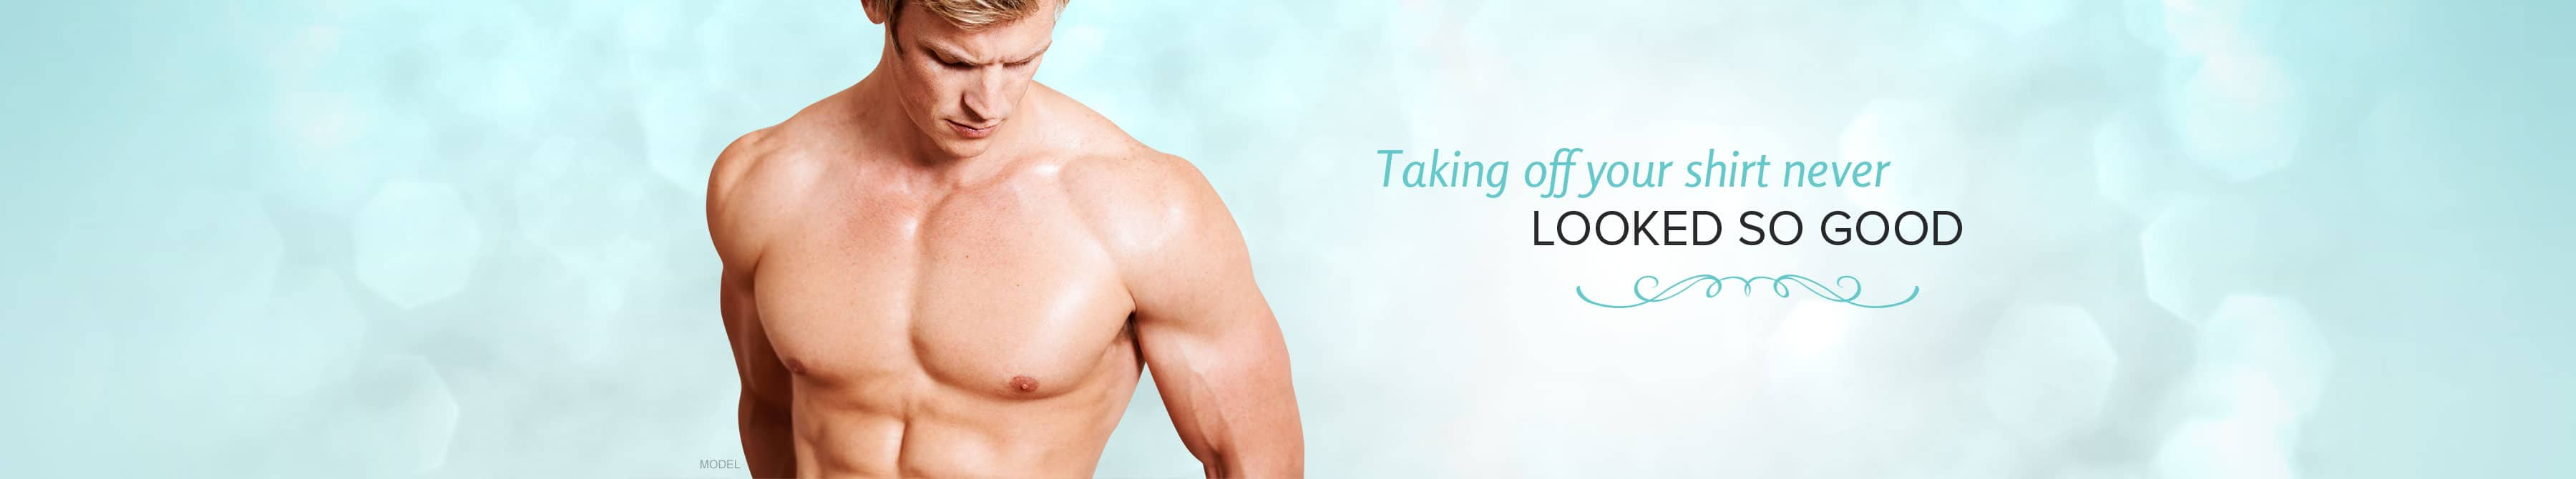 Gynecomastia Correction in Atlanta | Buckhead Plastic Surgery